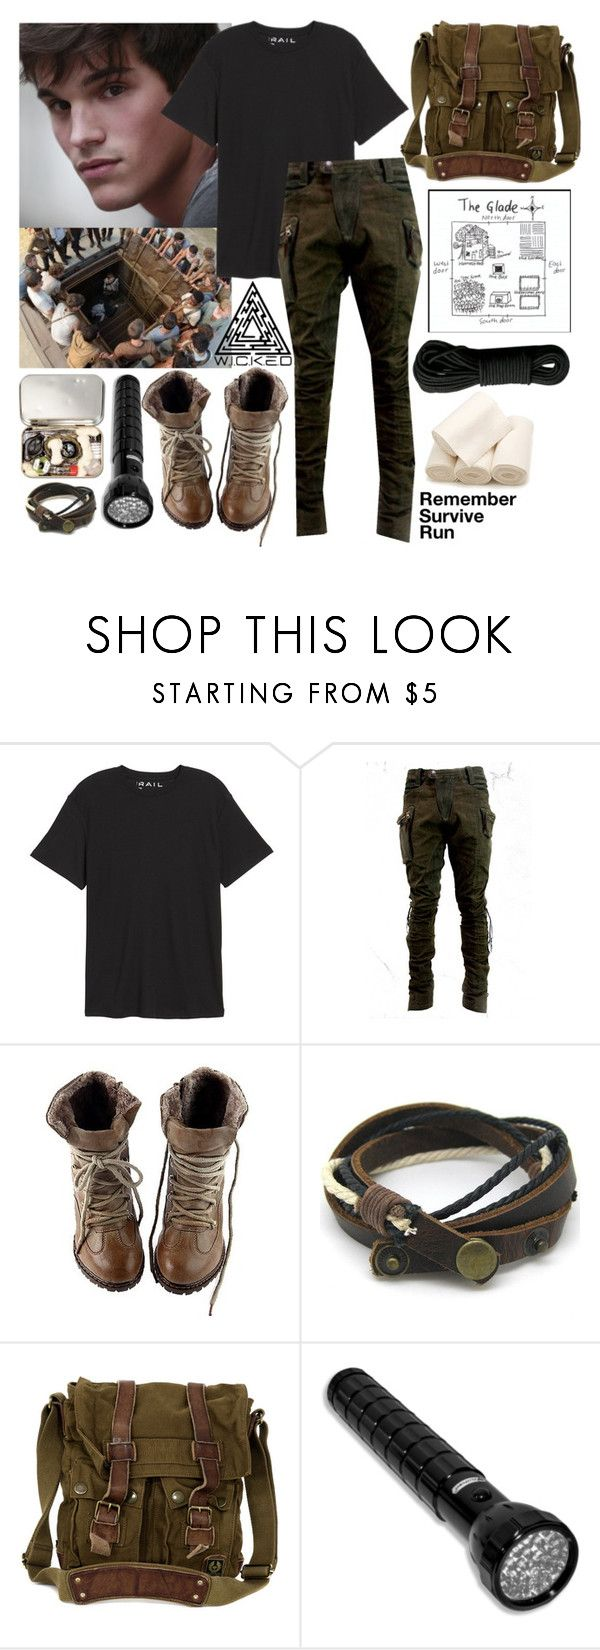 """Remember, Survive, Run"" by slytherin-for-life ❤ liked on Polyvore featuring DUO, Public Opinion, Belstaff, Rothco, men's fashion, menswear, MazeRunner, DeathCure, ScorchTrials and fevercode"